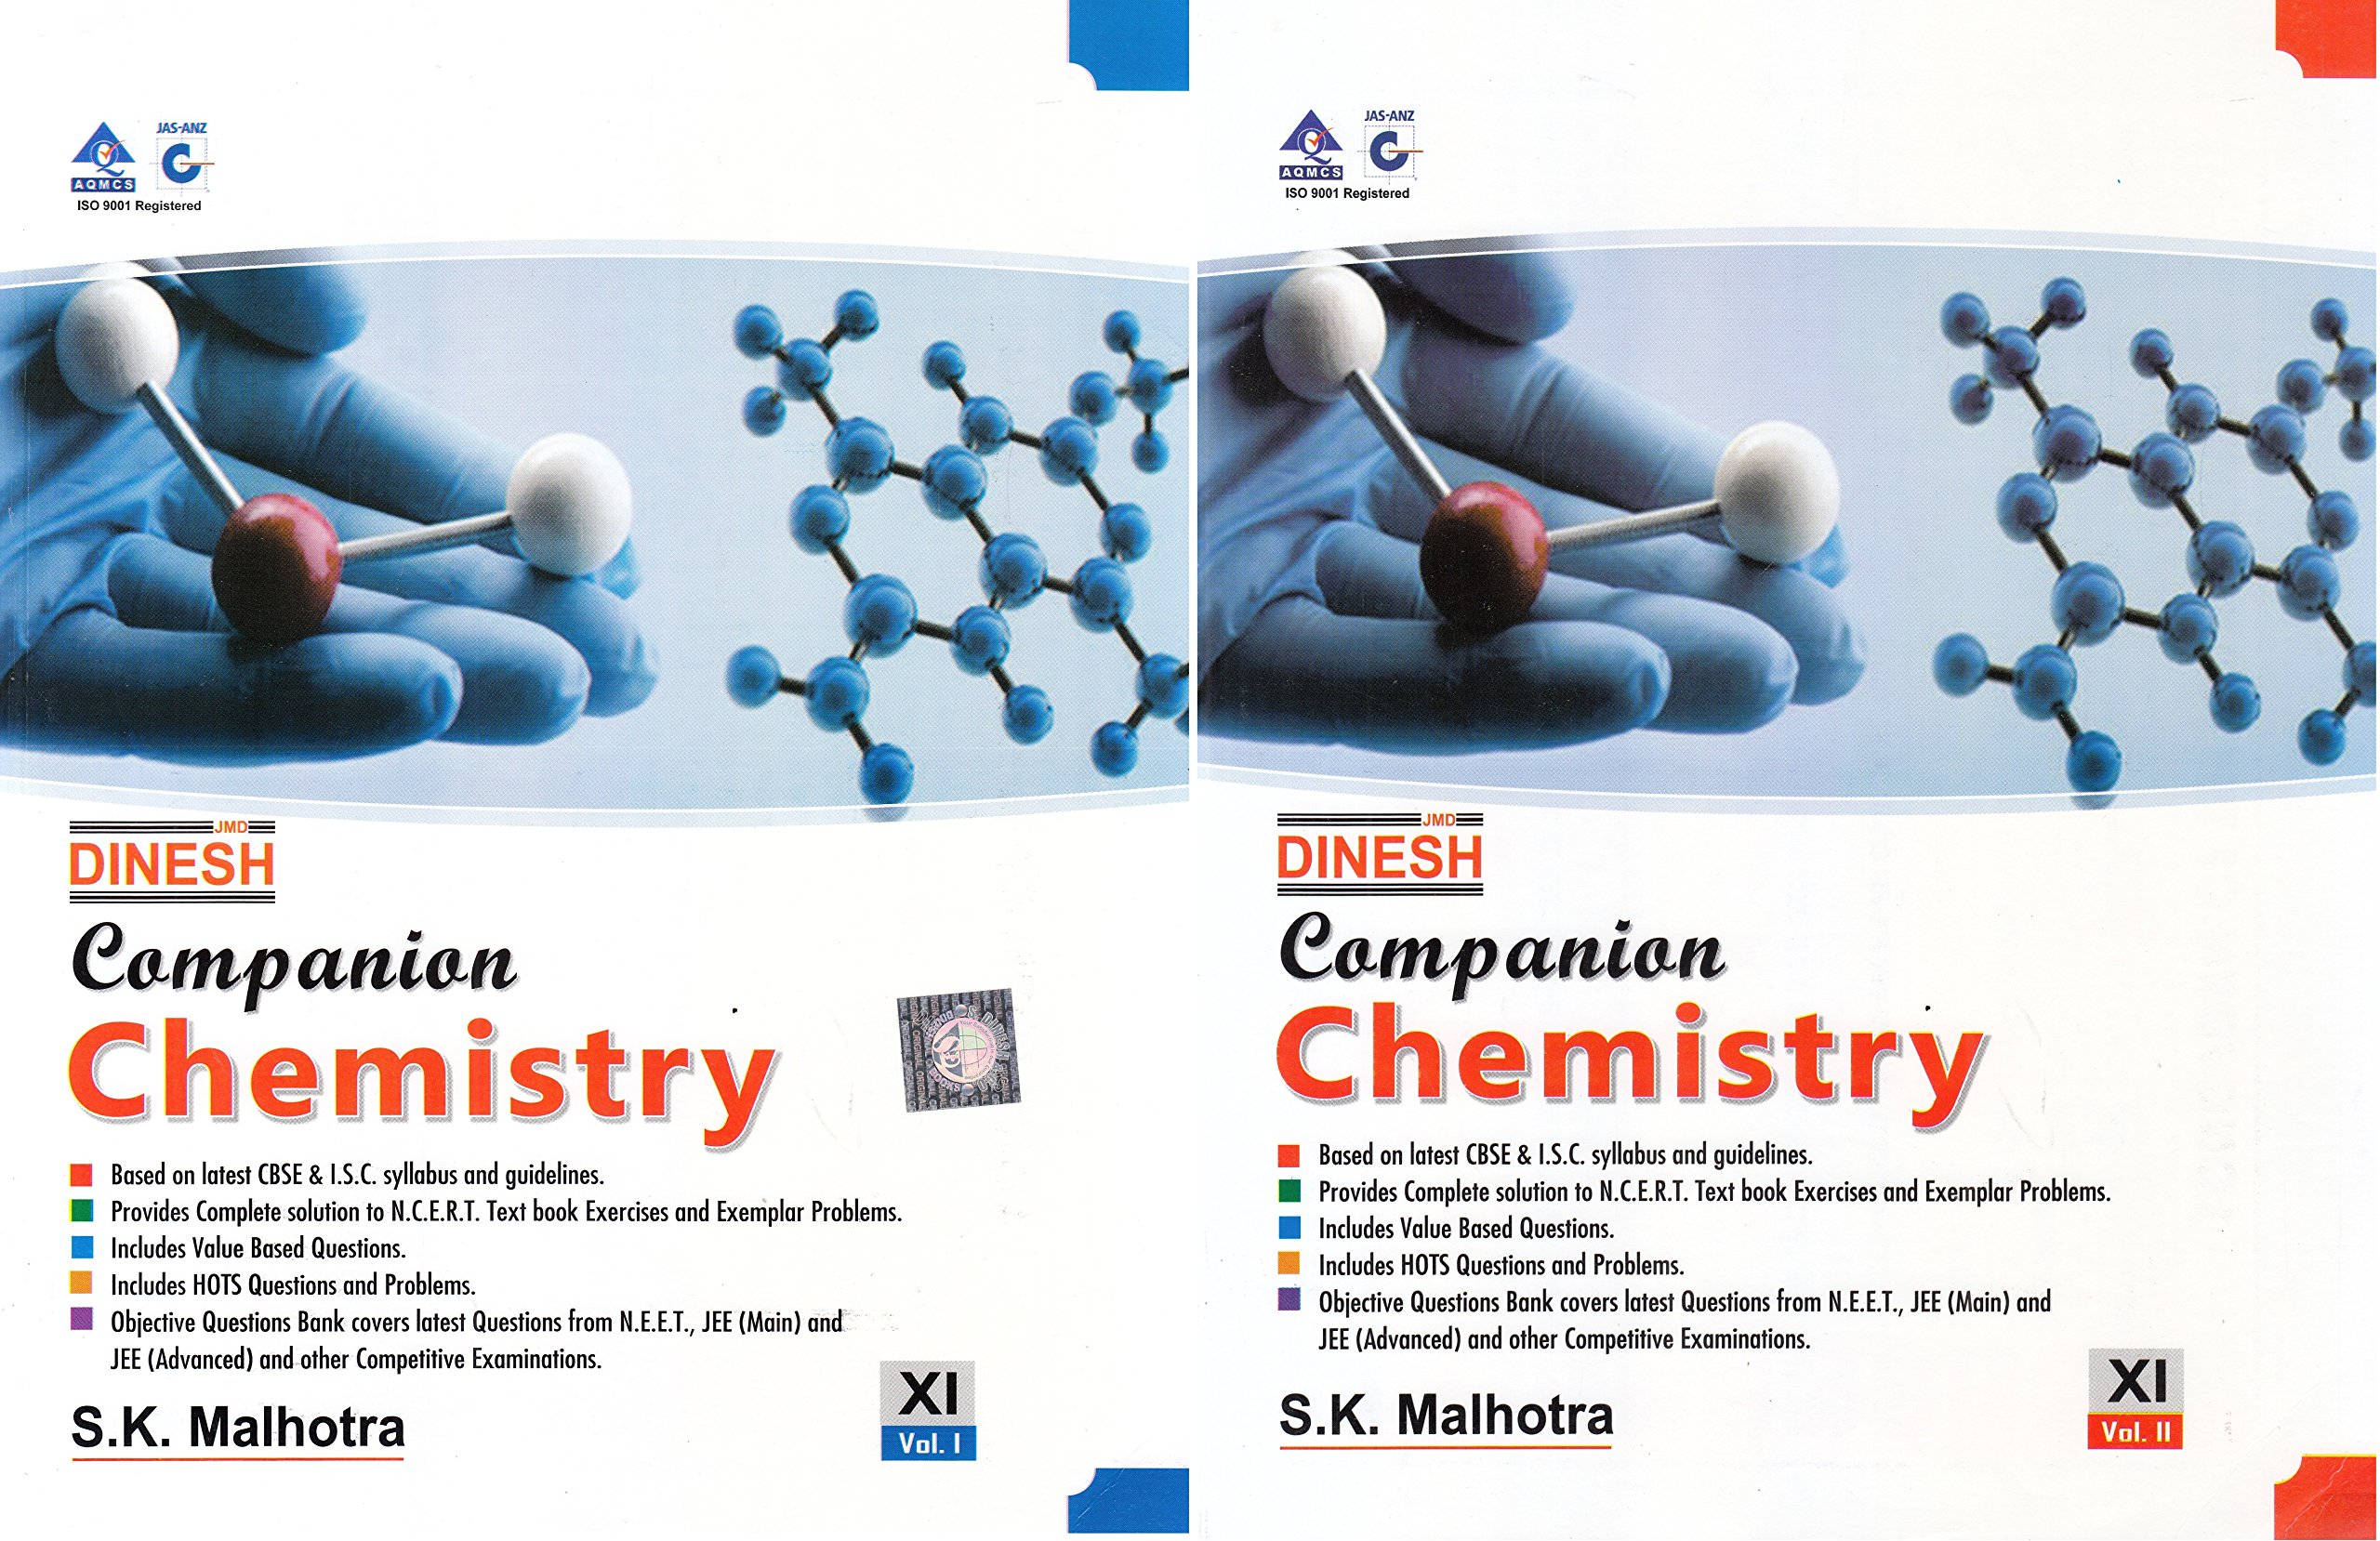 Dinesh Companion Chemistry for Class 11 - 2018-2019 Session